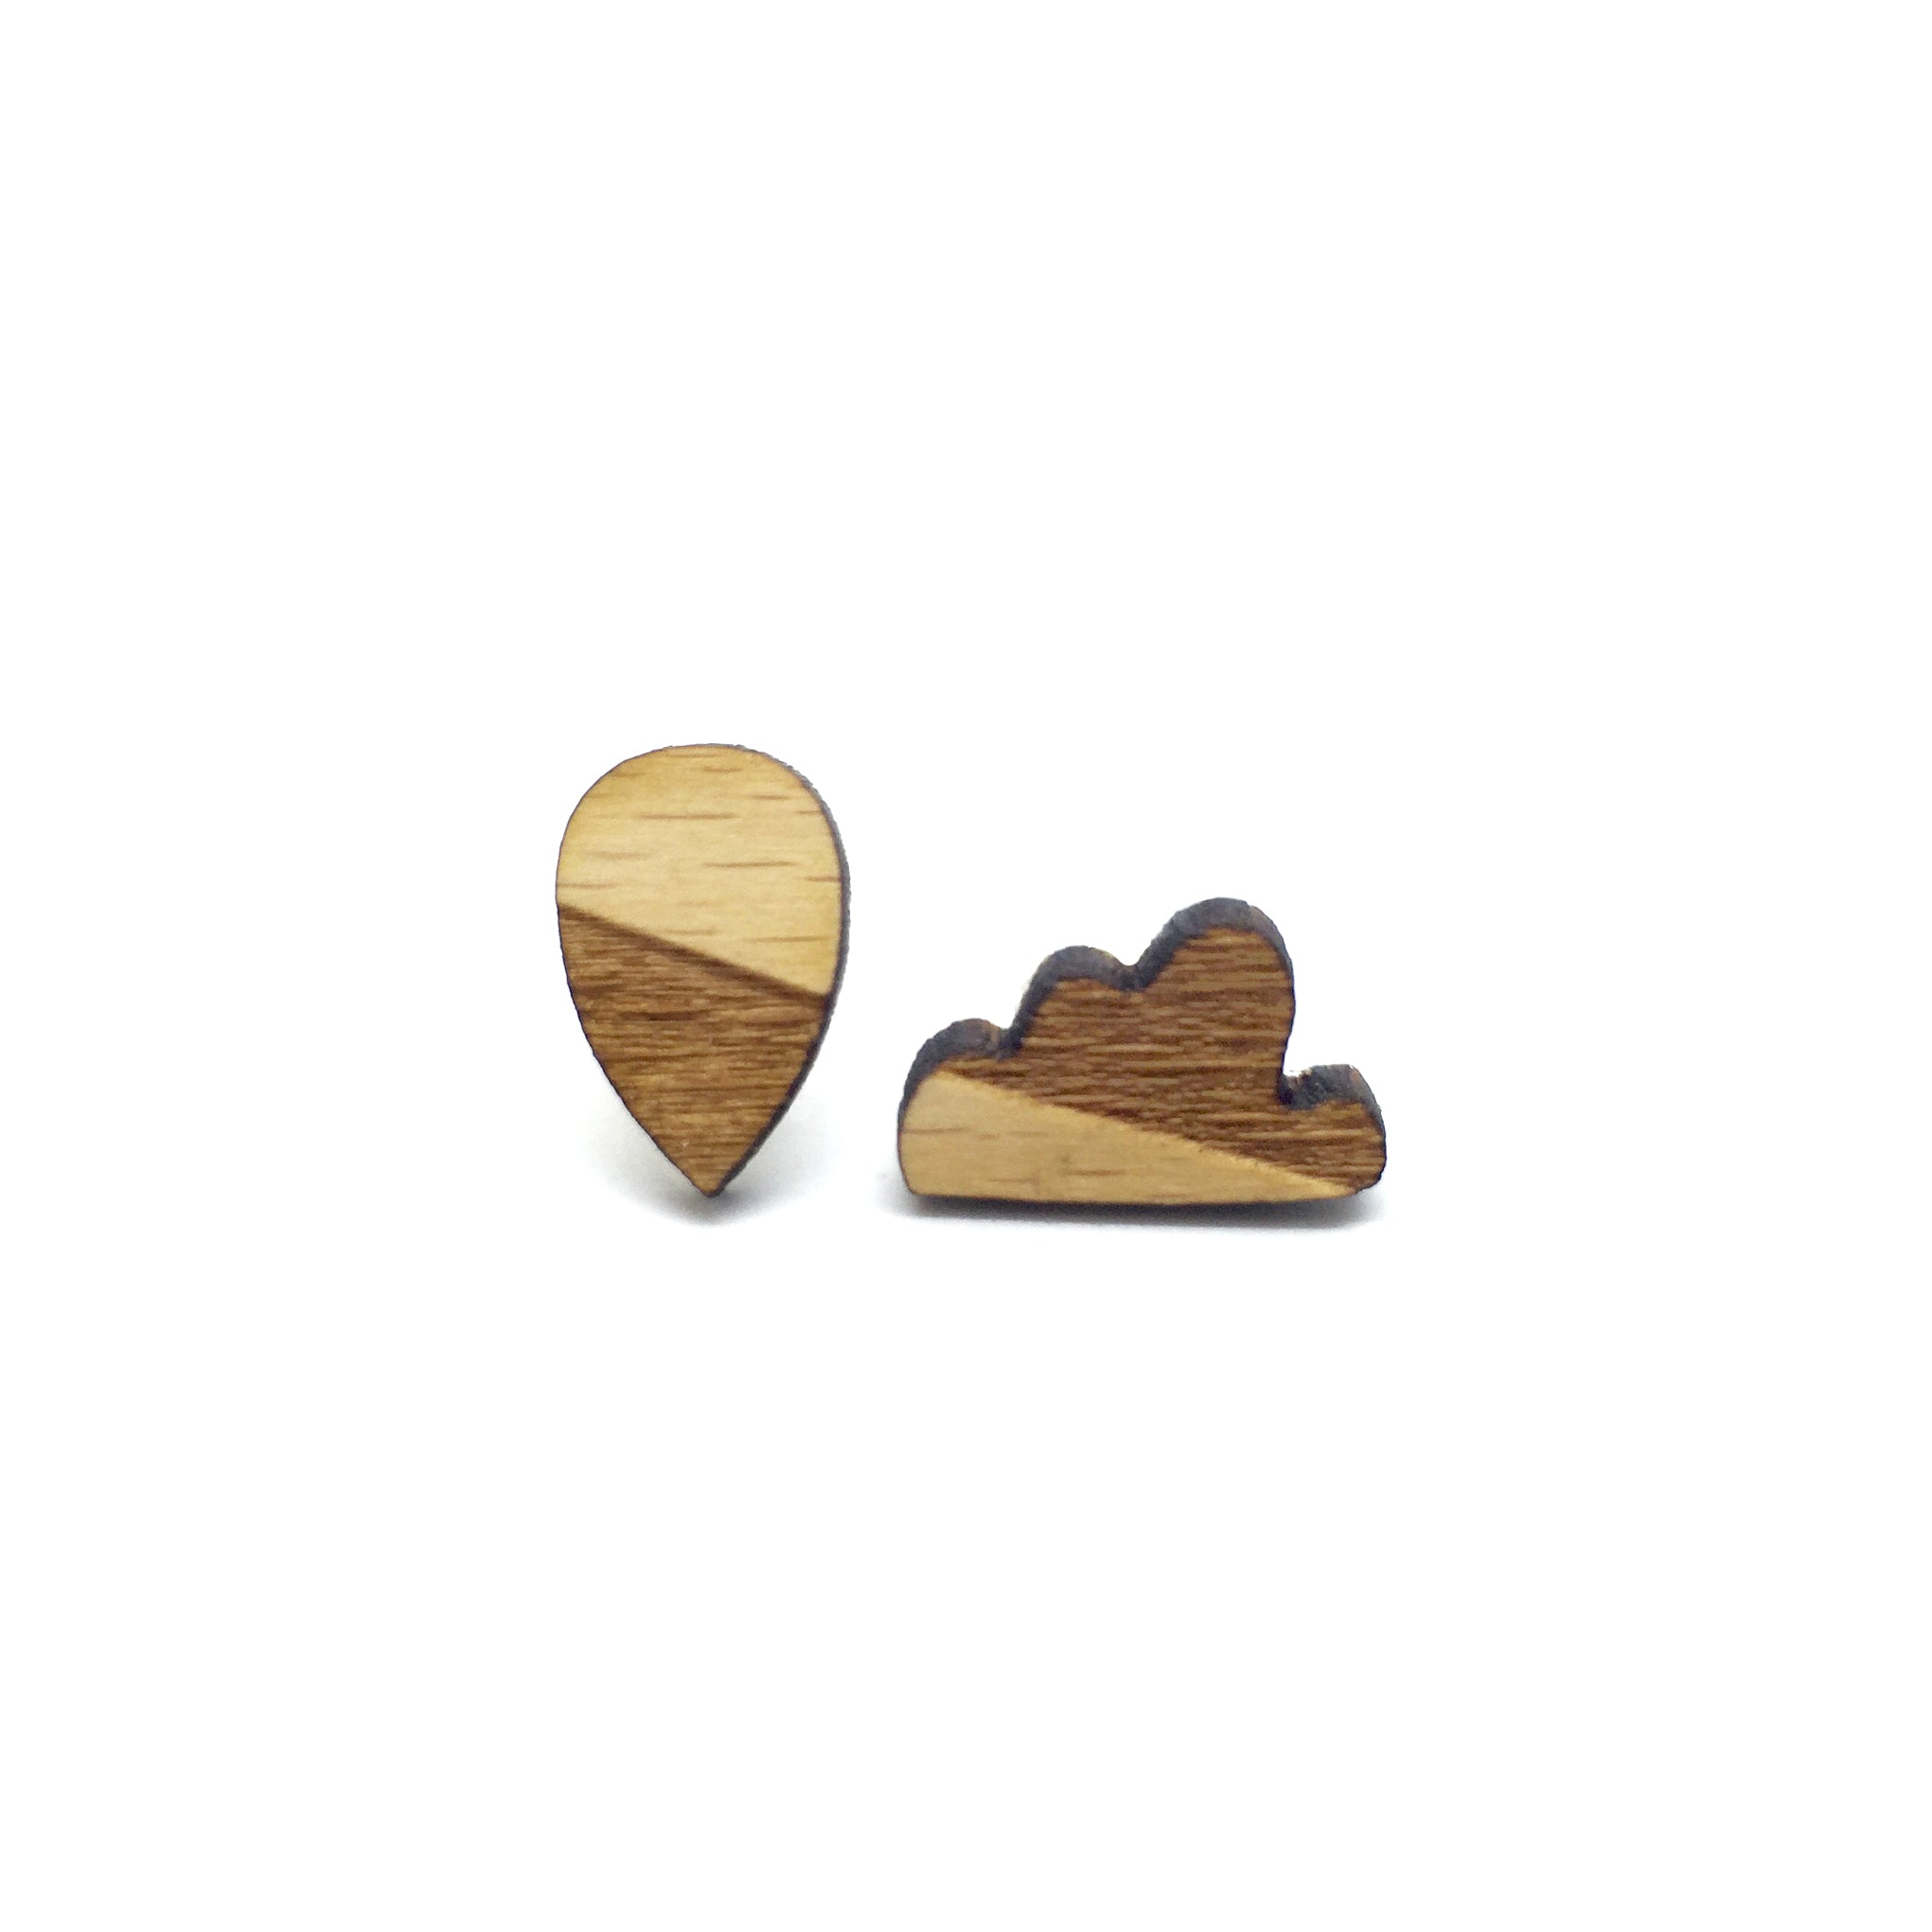 A Rainy Day Laser Cut Wood Earrings